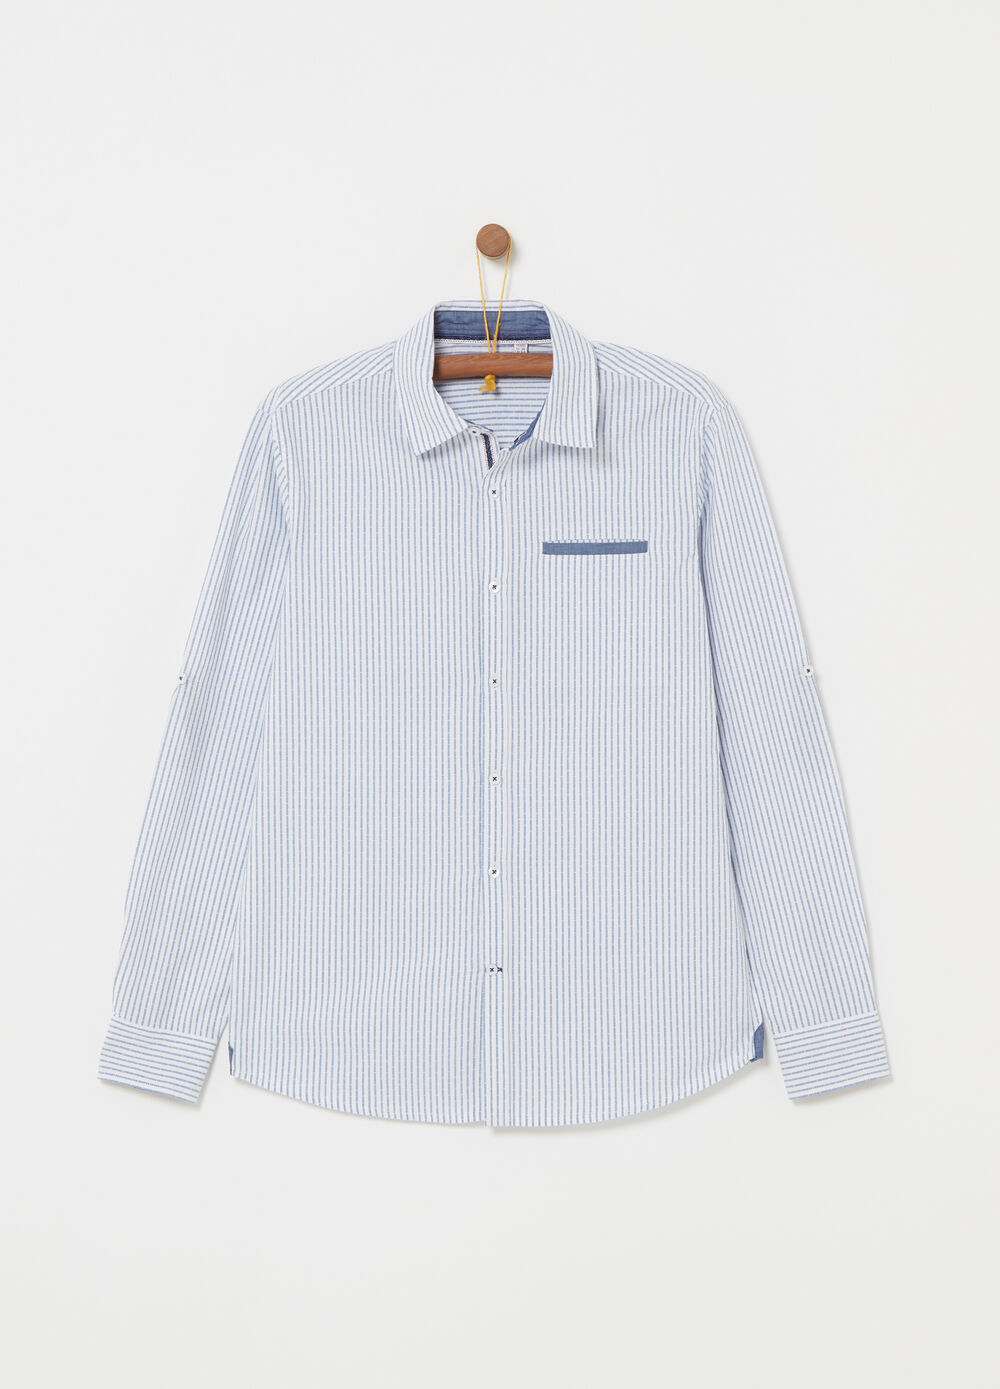 100% textured cotton shirt with stripes